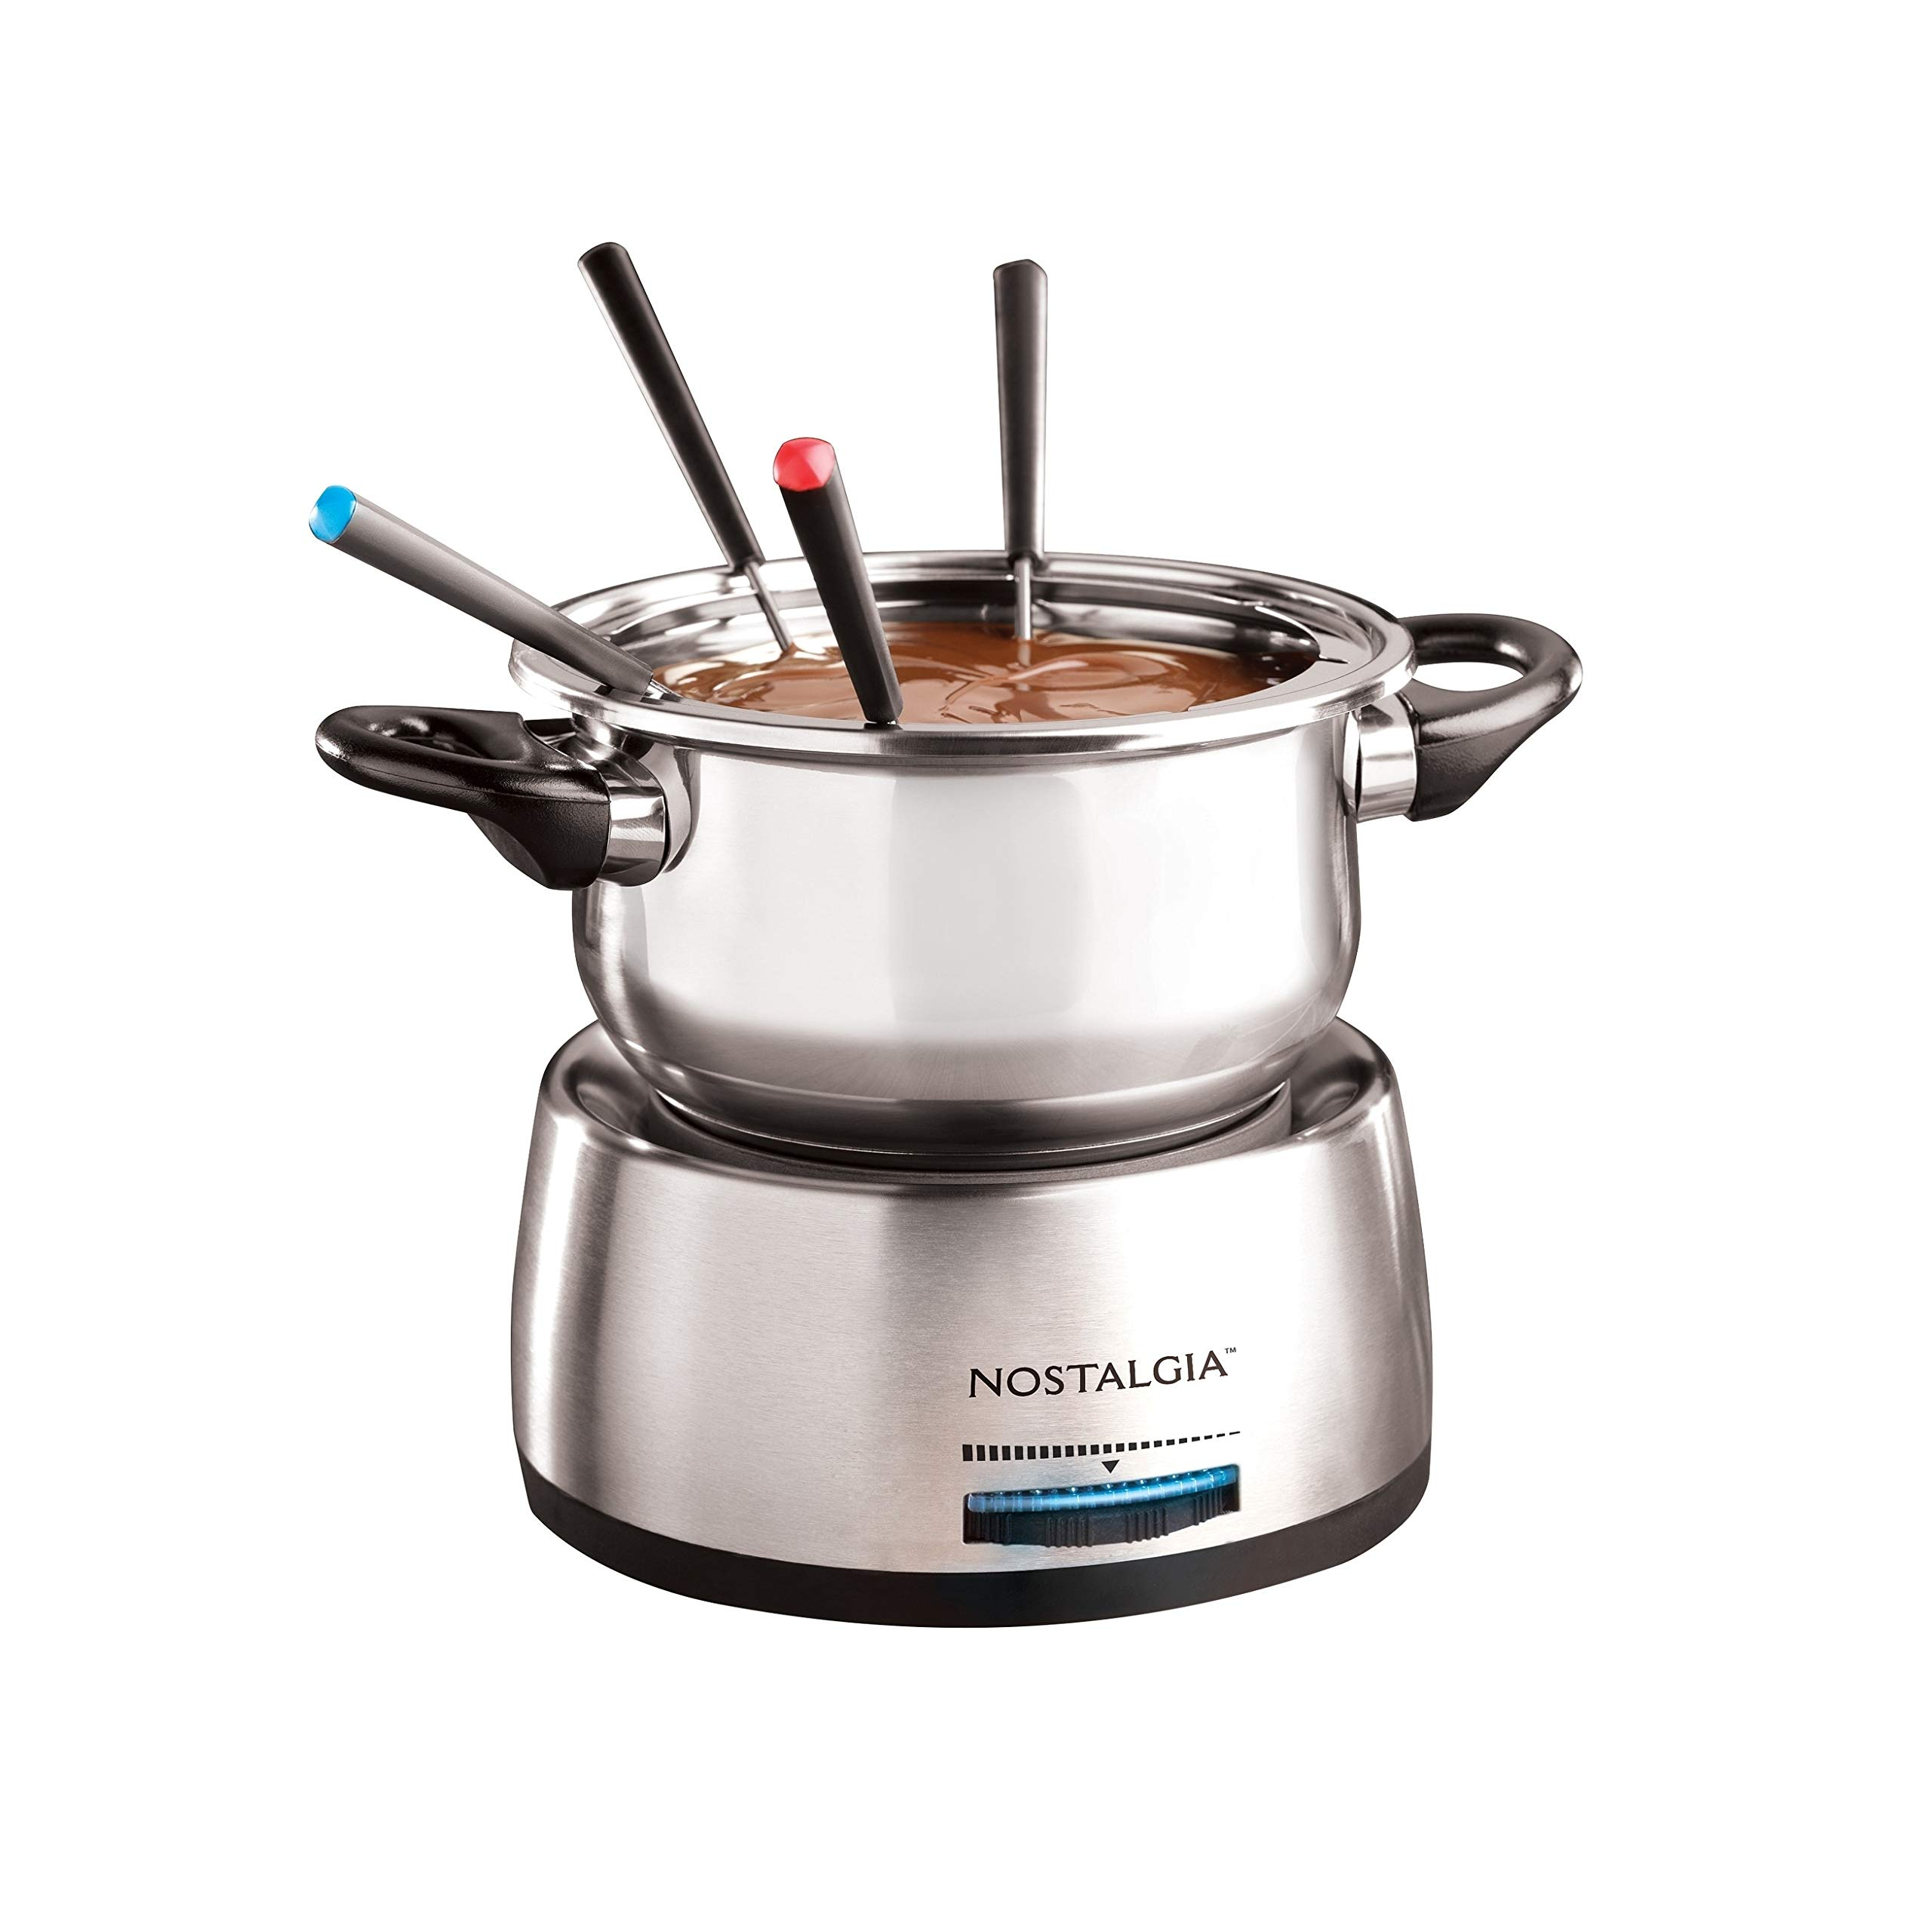 Fps200 6-Cup Stainless Steel Electric Fondue Pot Silver Metal Variable Temperature Control by Unknown